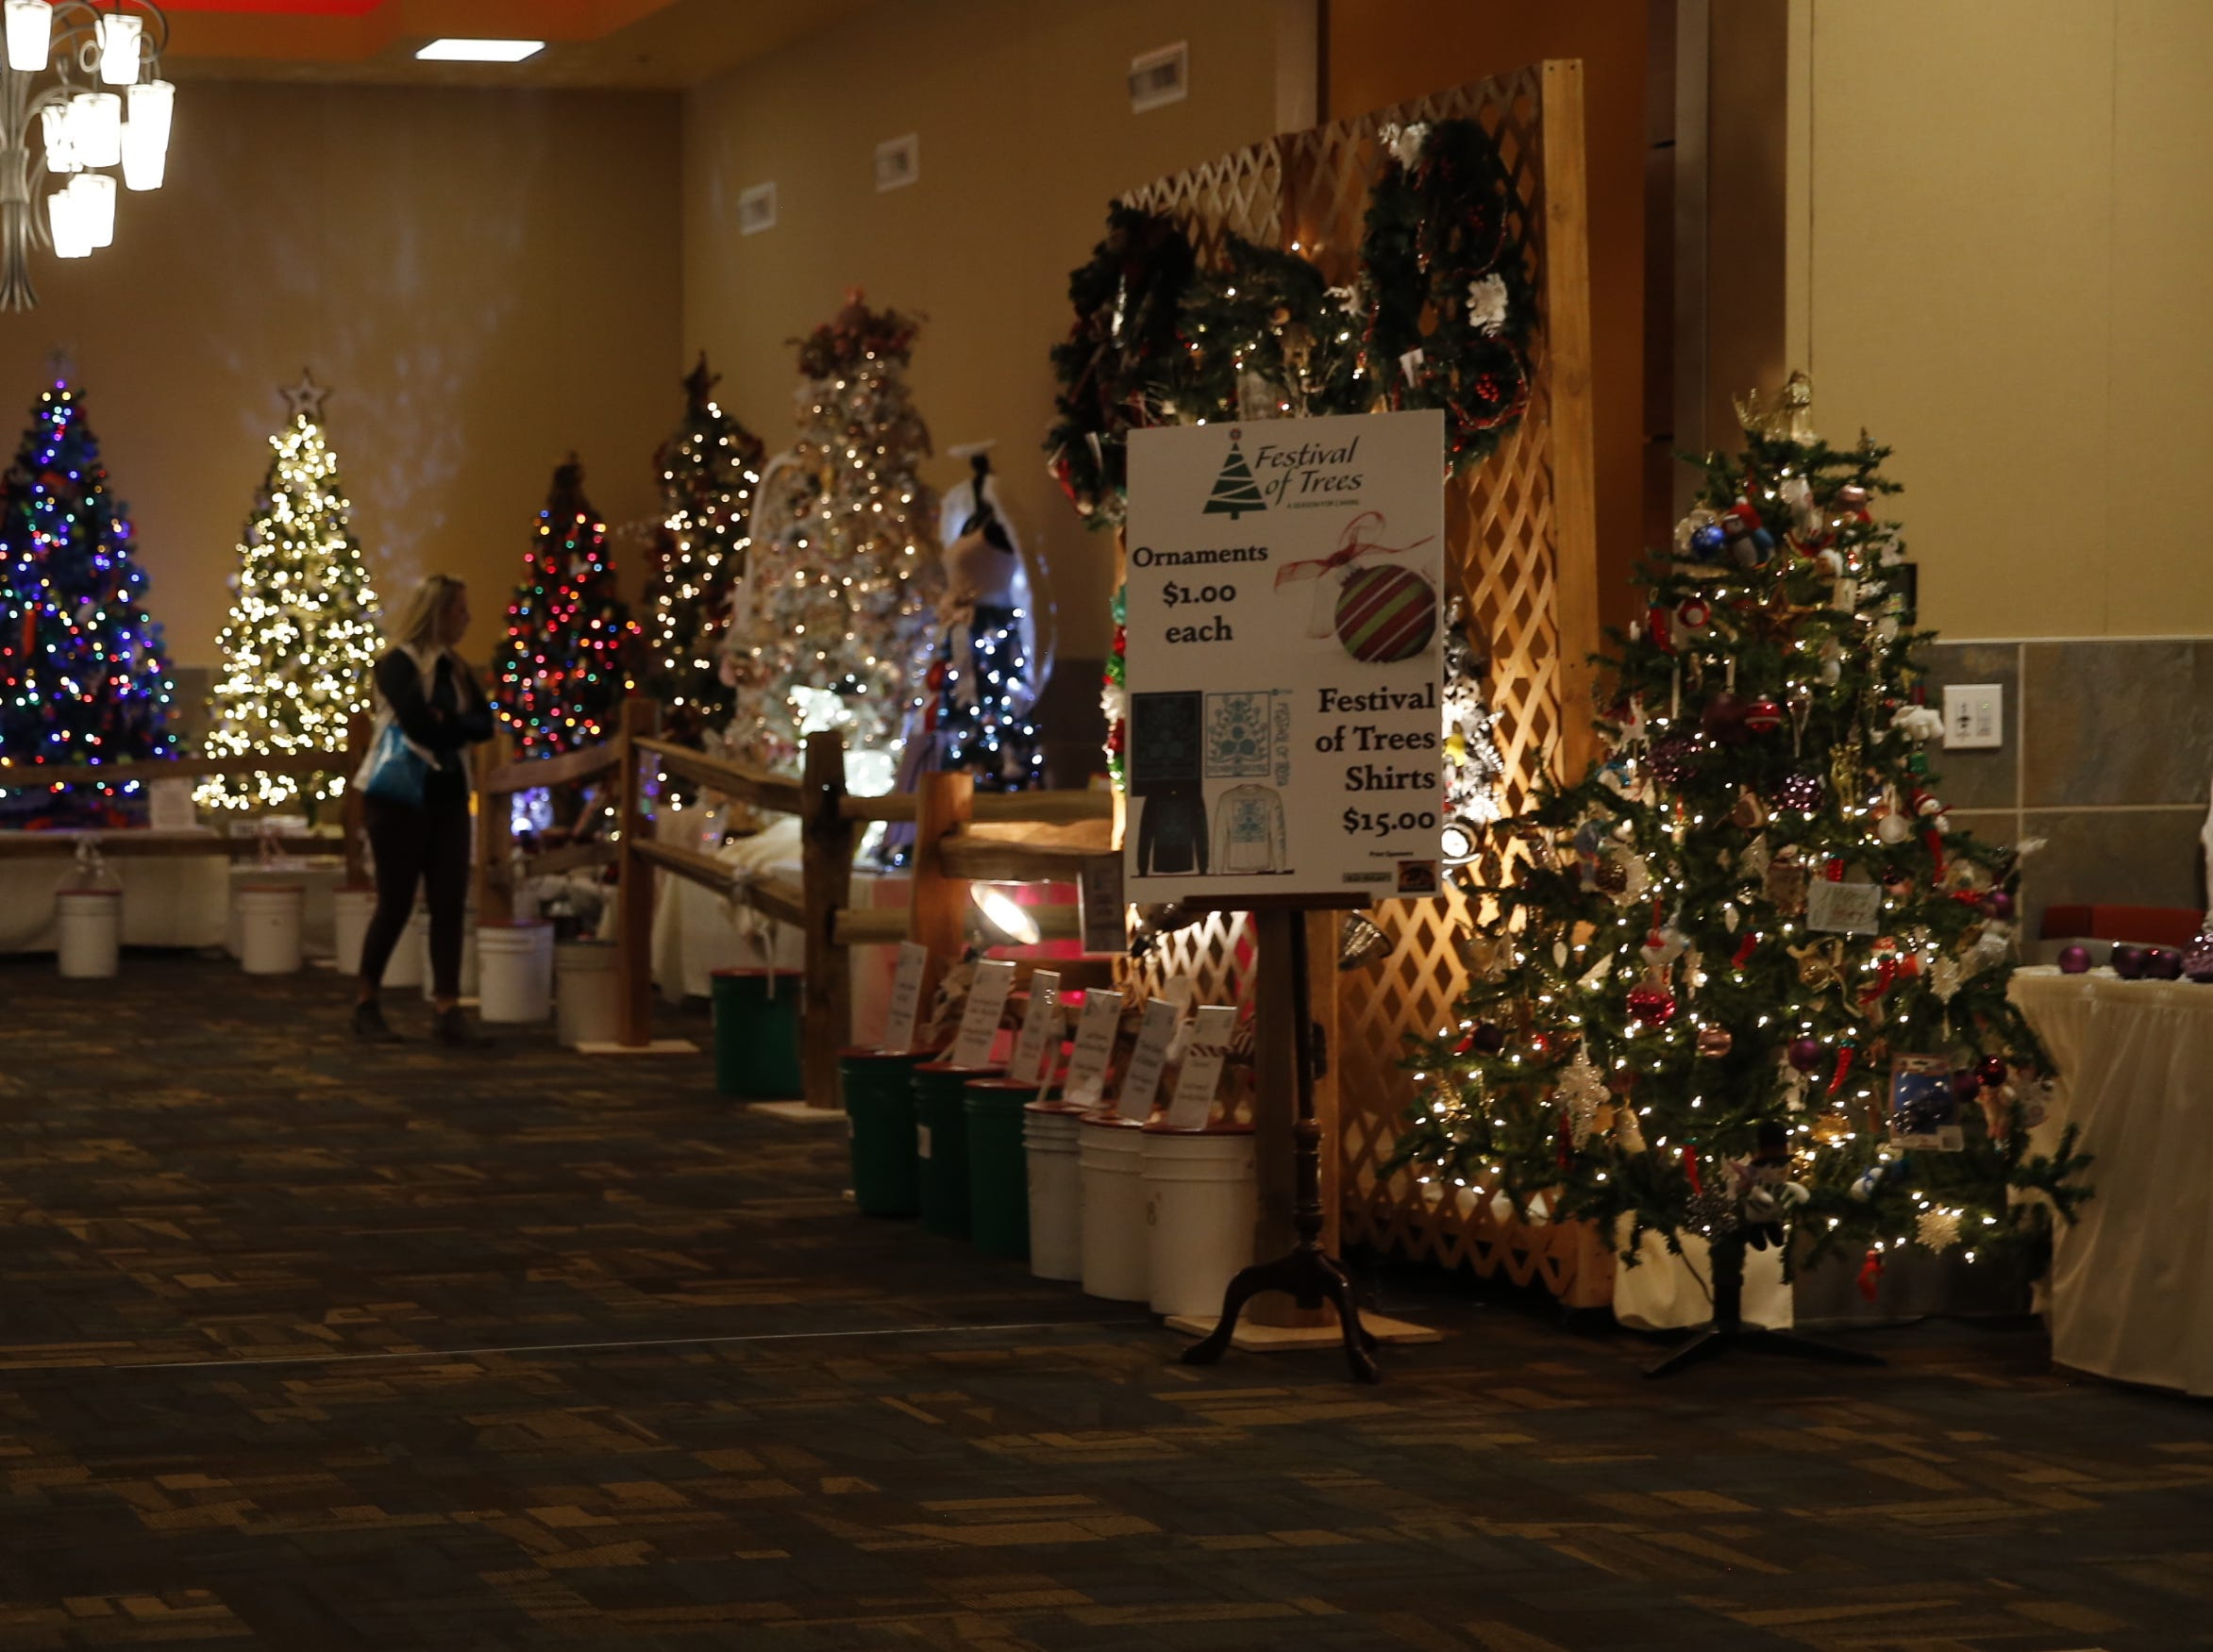 Hazel Jackson looks at trees, Wednesday, Nov. 28, 2018, on the first day of Festival of Trees at the Farmington Civic Center.